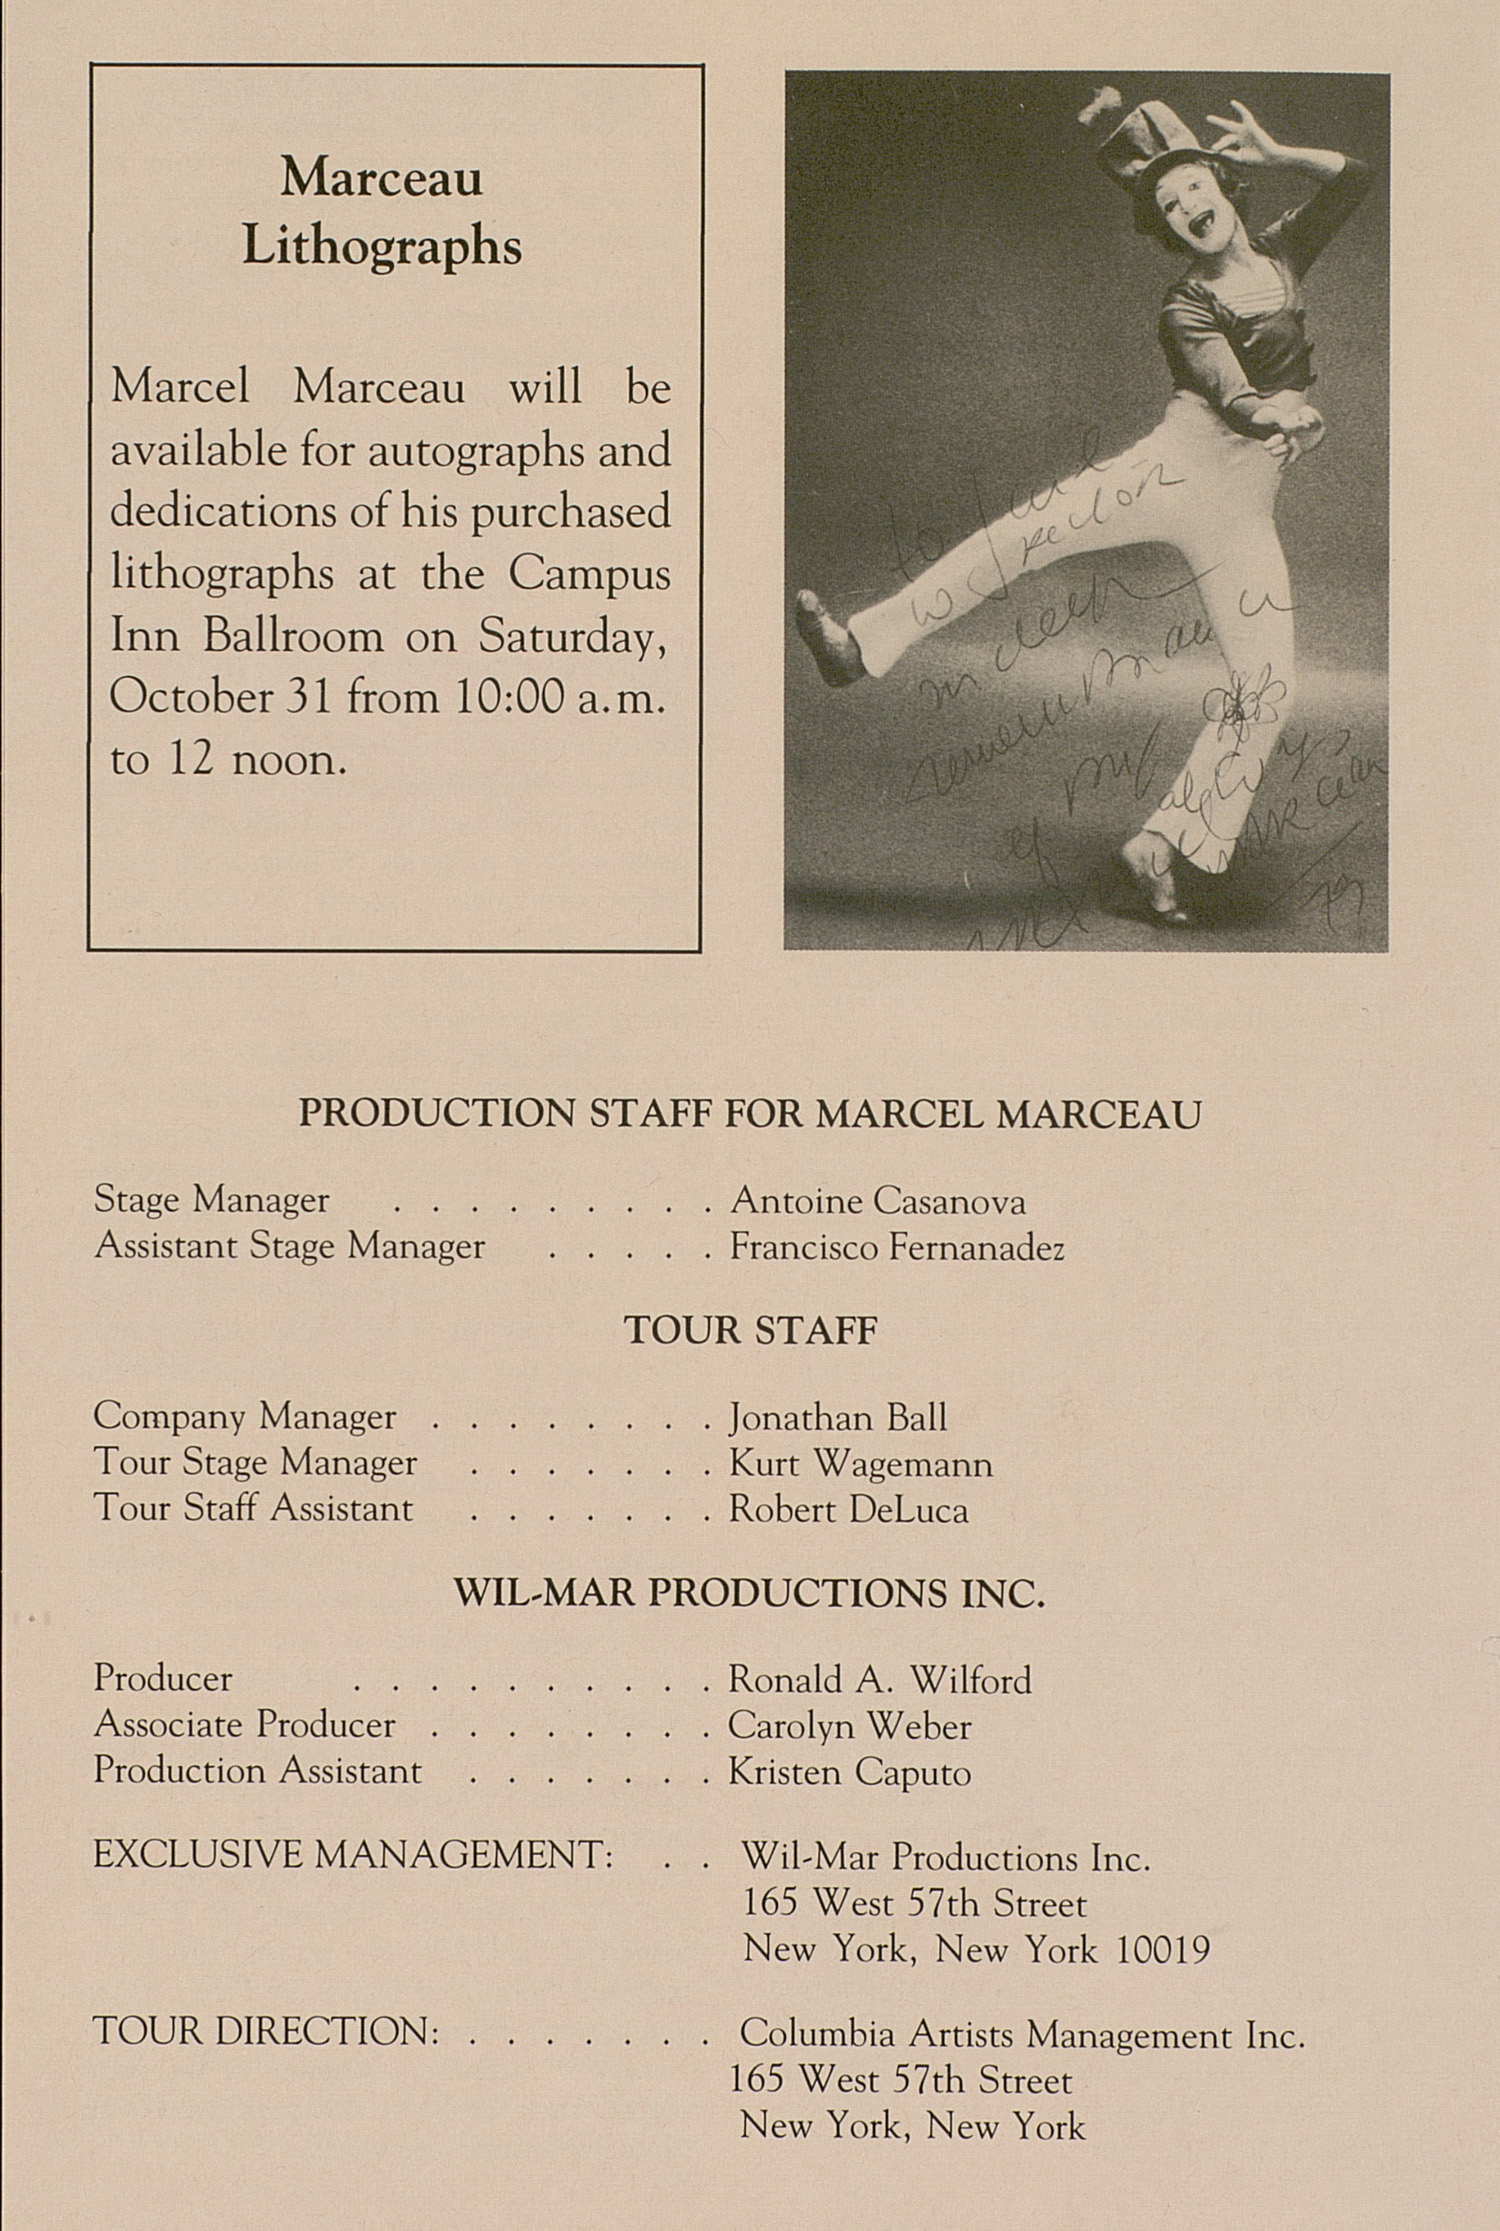 UMS Concert Program, October 30, 1992: University Musical Society -- Marcel Marceau image